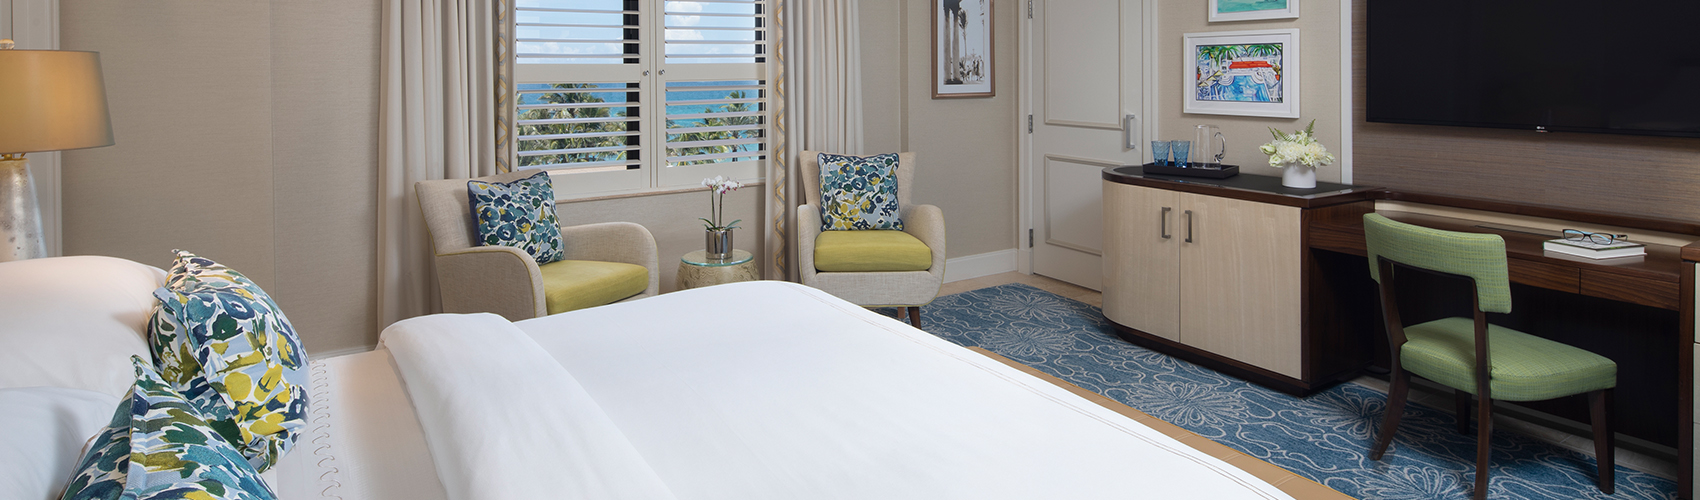 Deluxe Guest Room with Partial Ocean View and King Bed